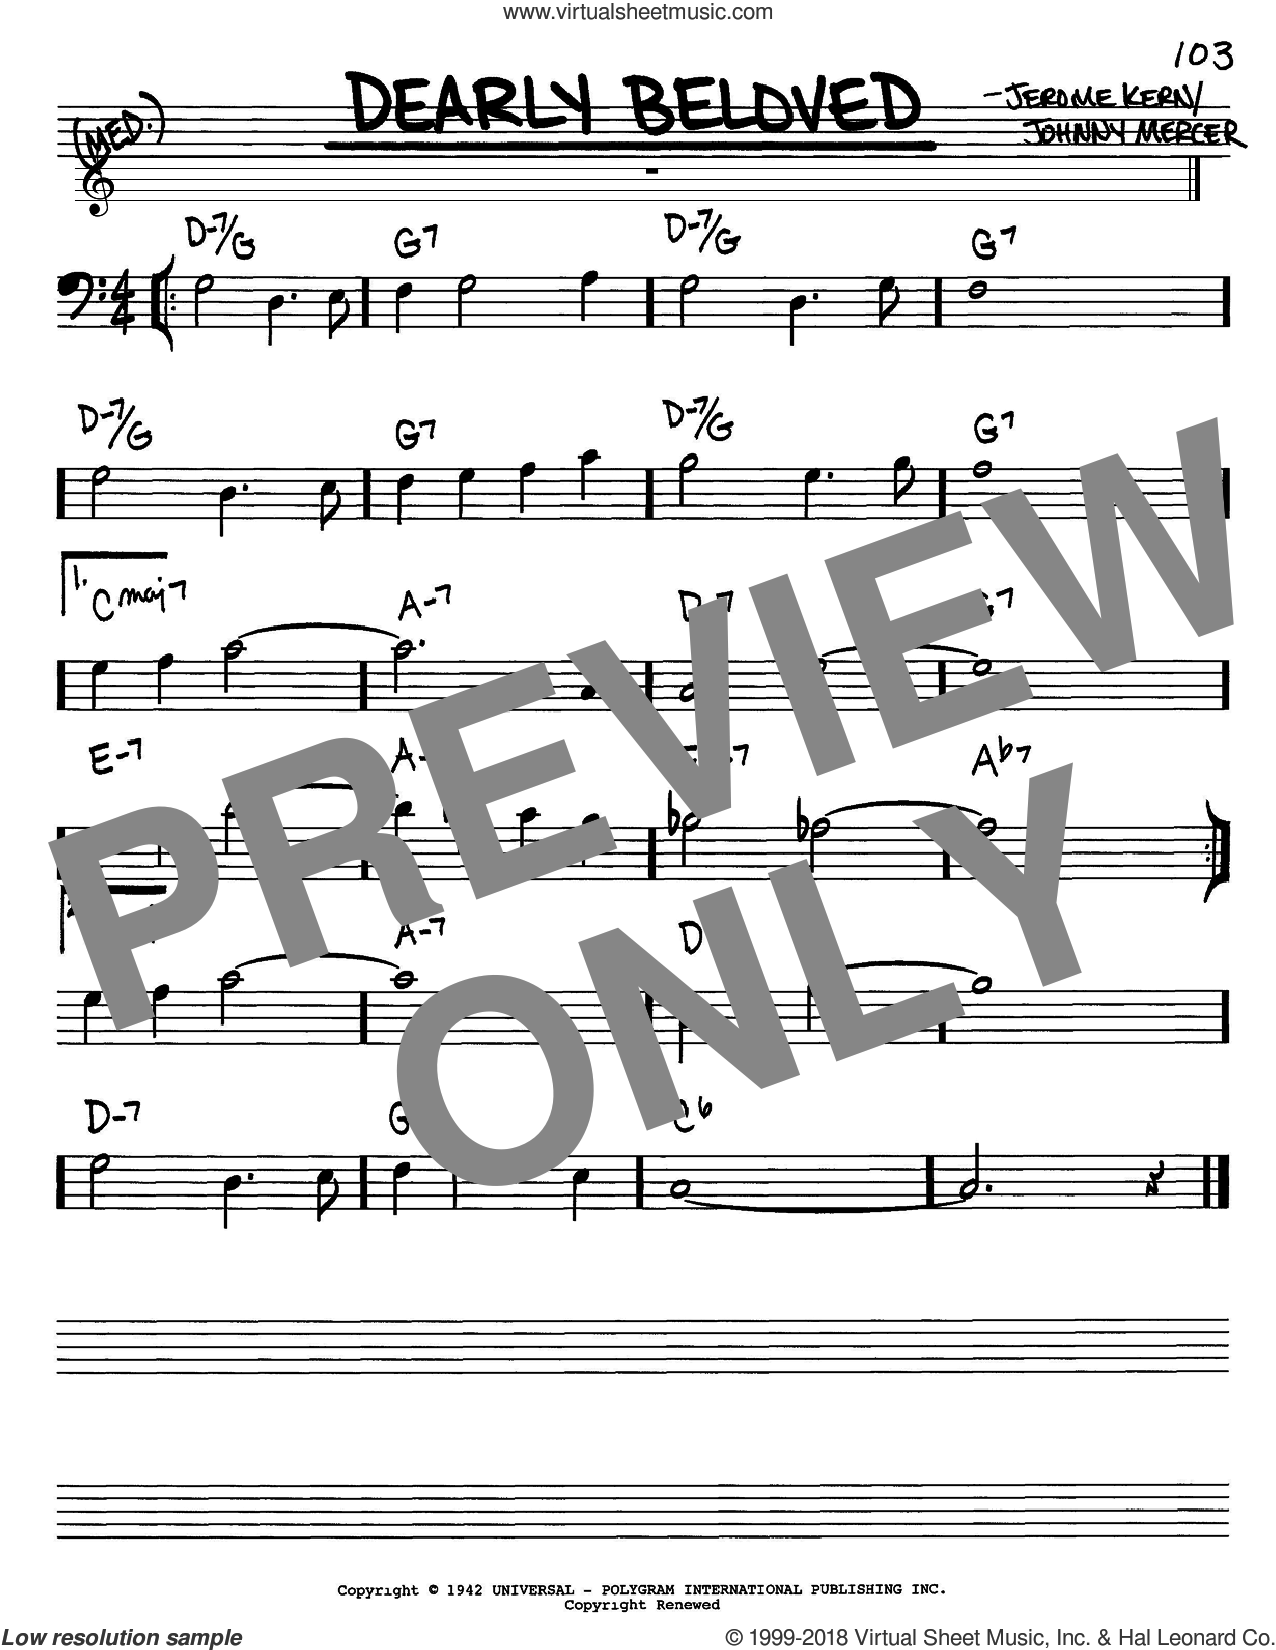 Dearly Beloved sheet music for voice and other instruments (bass clef) by Jerome Kern and Johnny Mercer, intermediate skill level